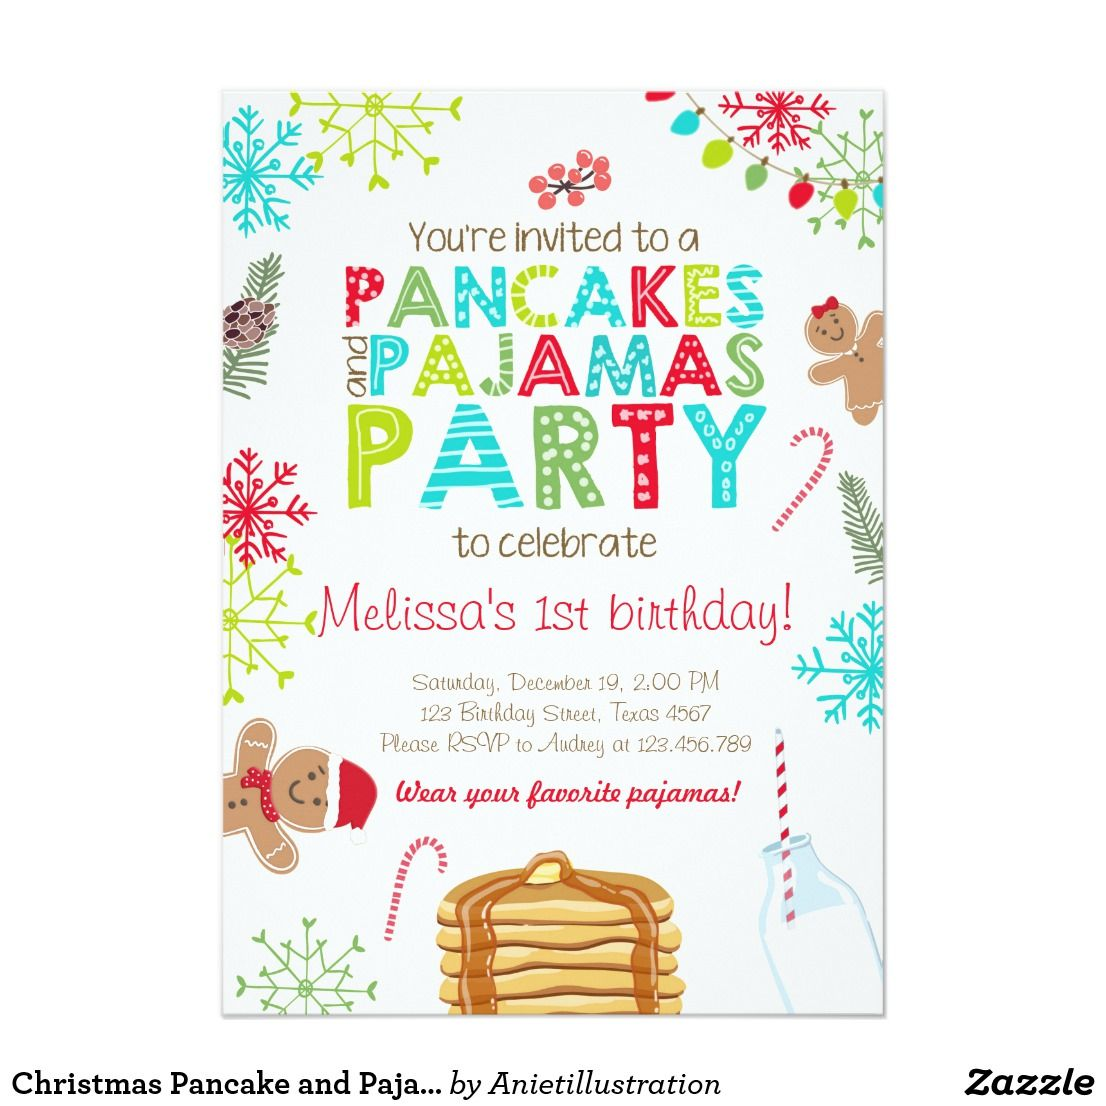 Christmas Pancake and Pajamas birthday invitation | Christmas ...